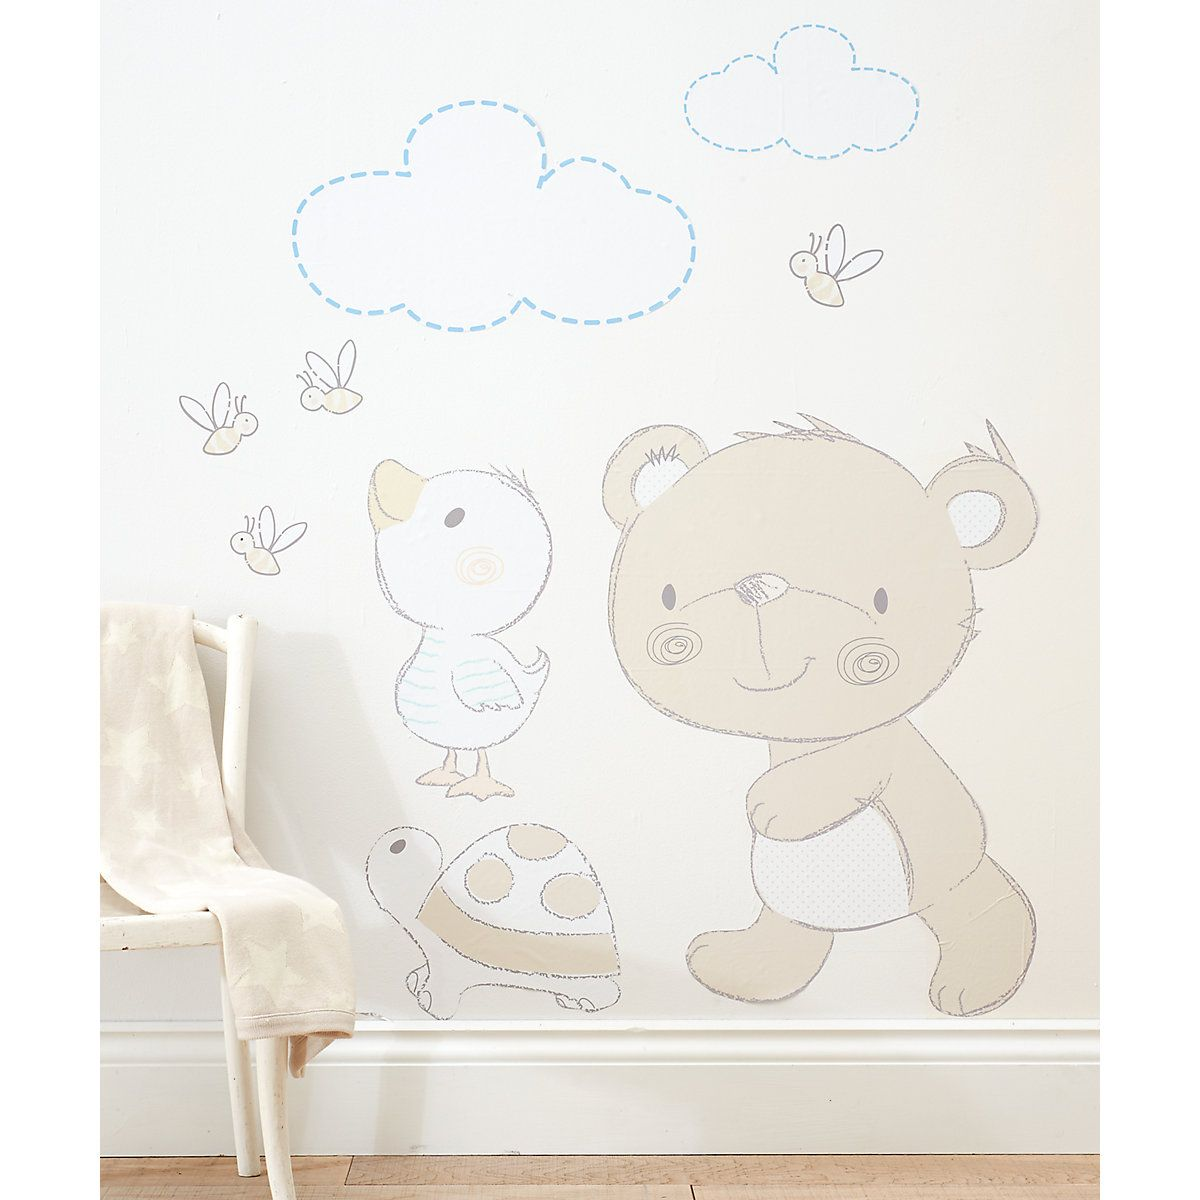 wall stickers wall art from the mothercare wall stickers wall wall stickers wall art from the mothercare wall stickers wall art range online